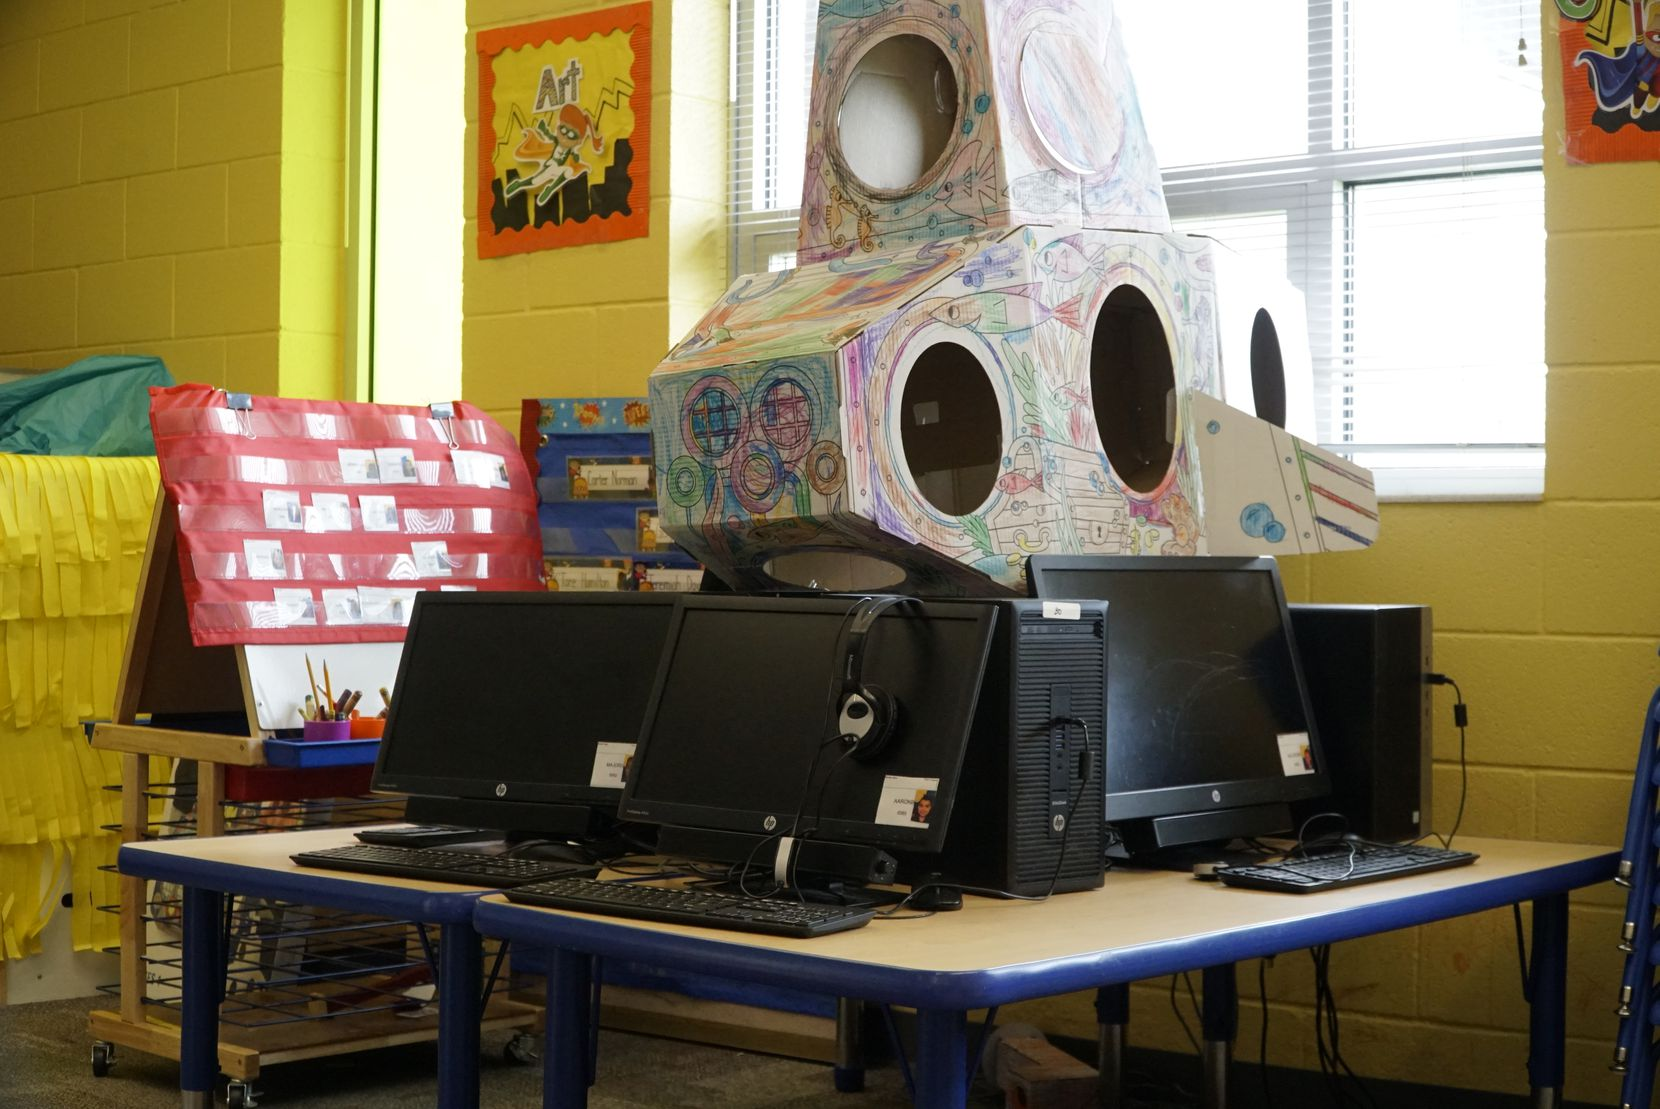 The Fort Worth school district had a recent malware attack that could complicate the district's efforts to provide online instruction to students. Shown here are computers at the Leadership Academy at John T. White Elementary School in Fort Worth.